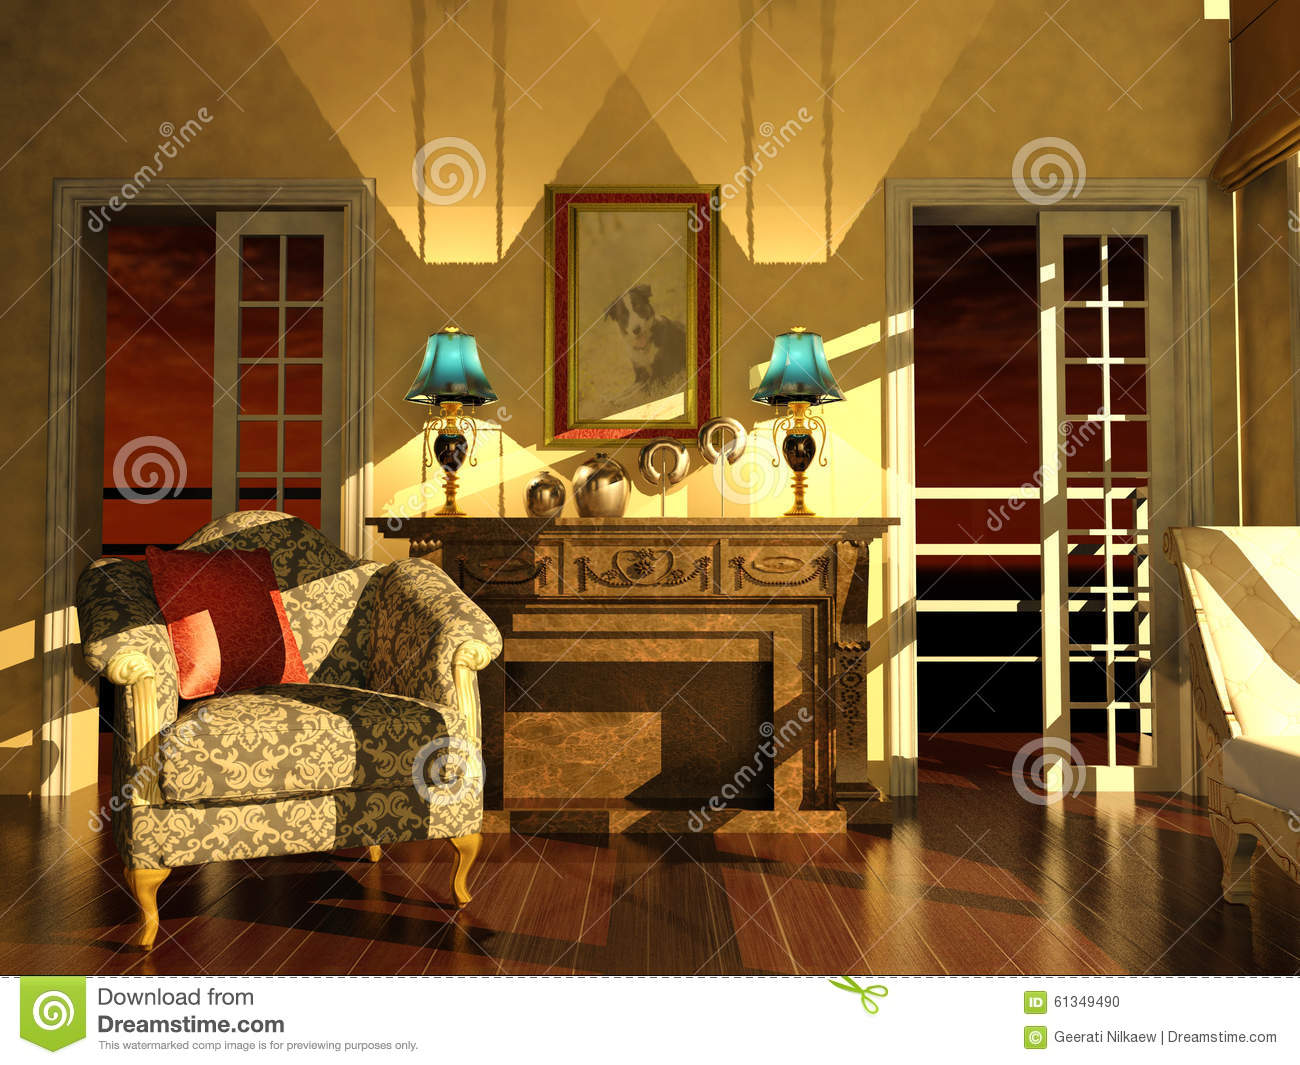 classic living room interior in dusk light stock illustration royalty free illustration